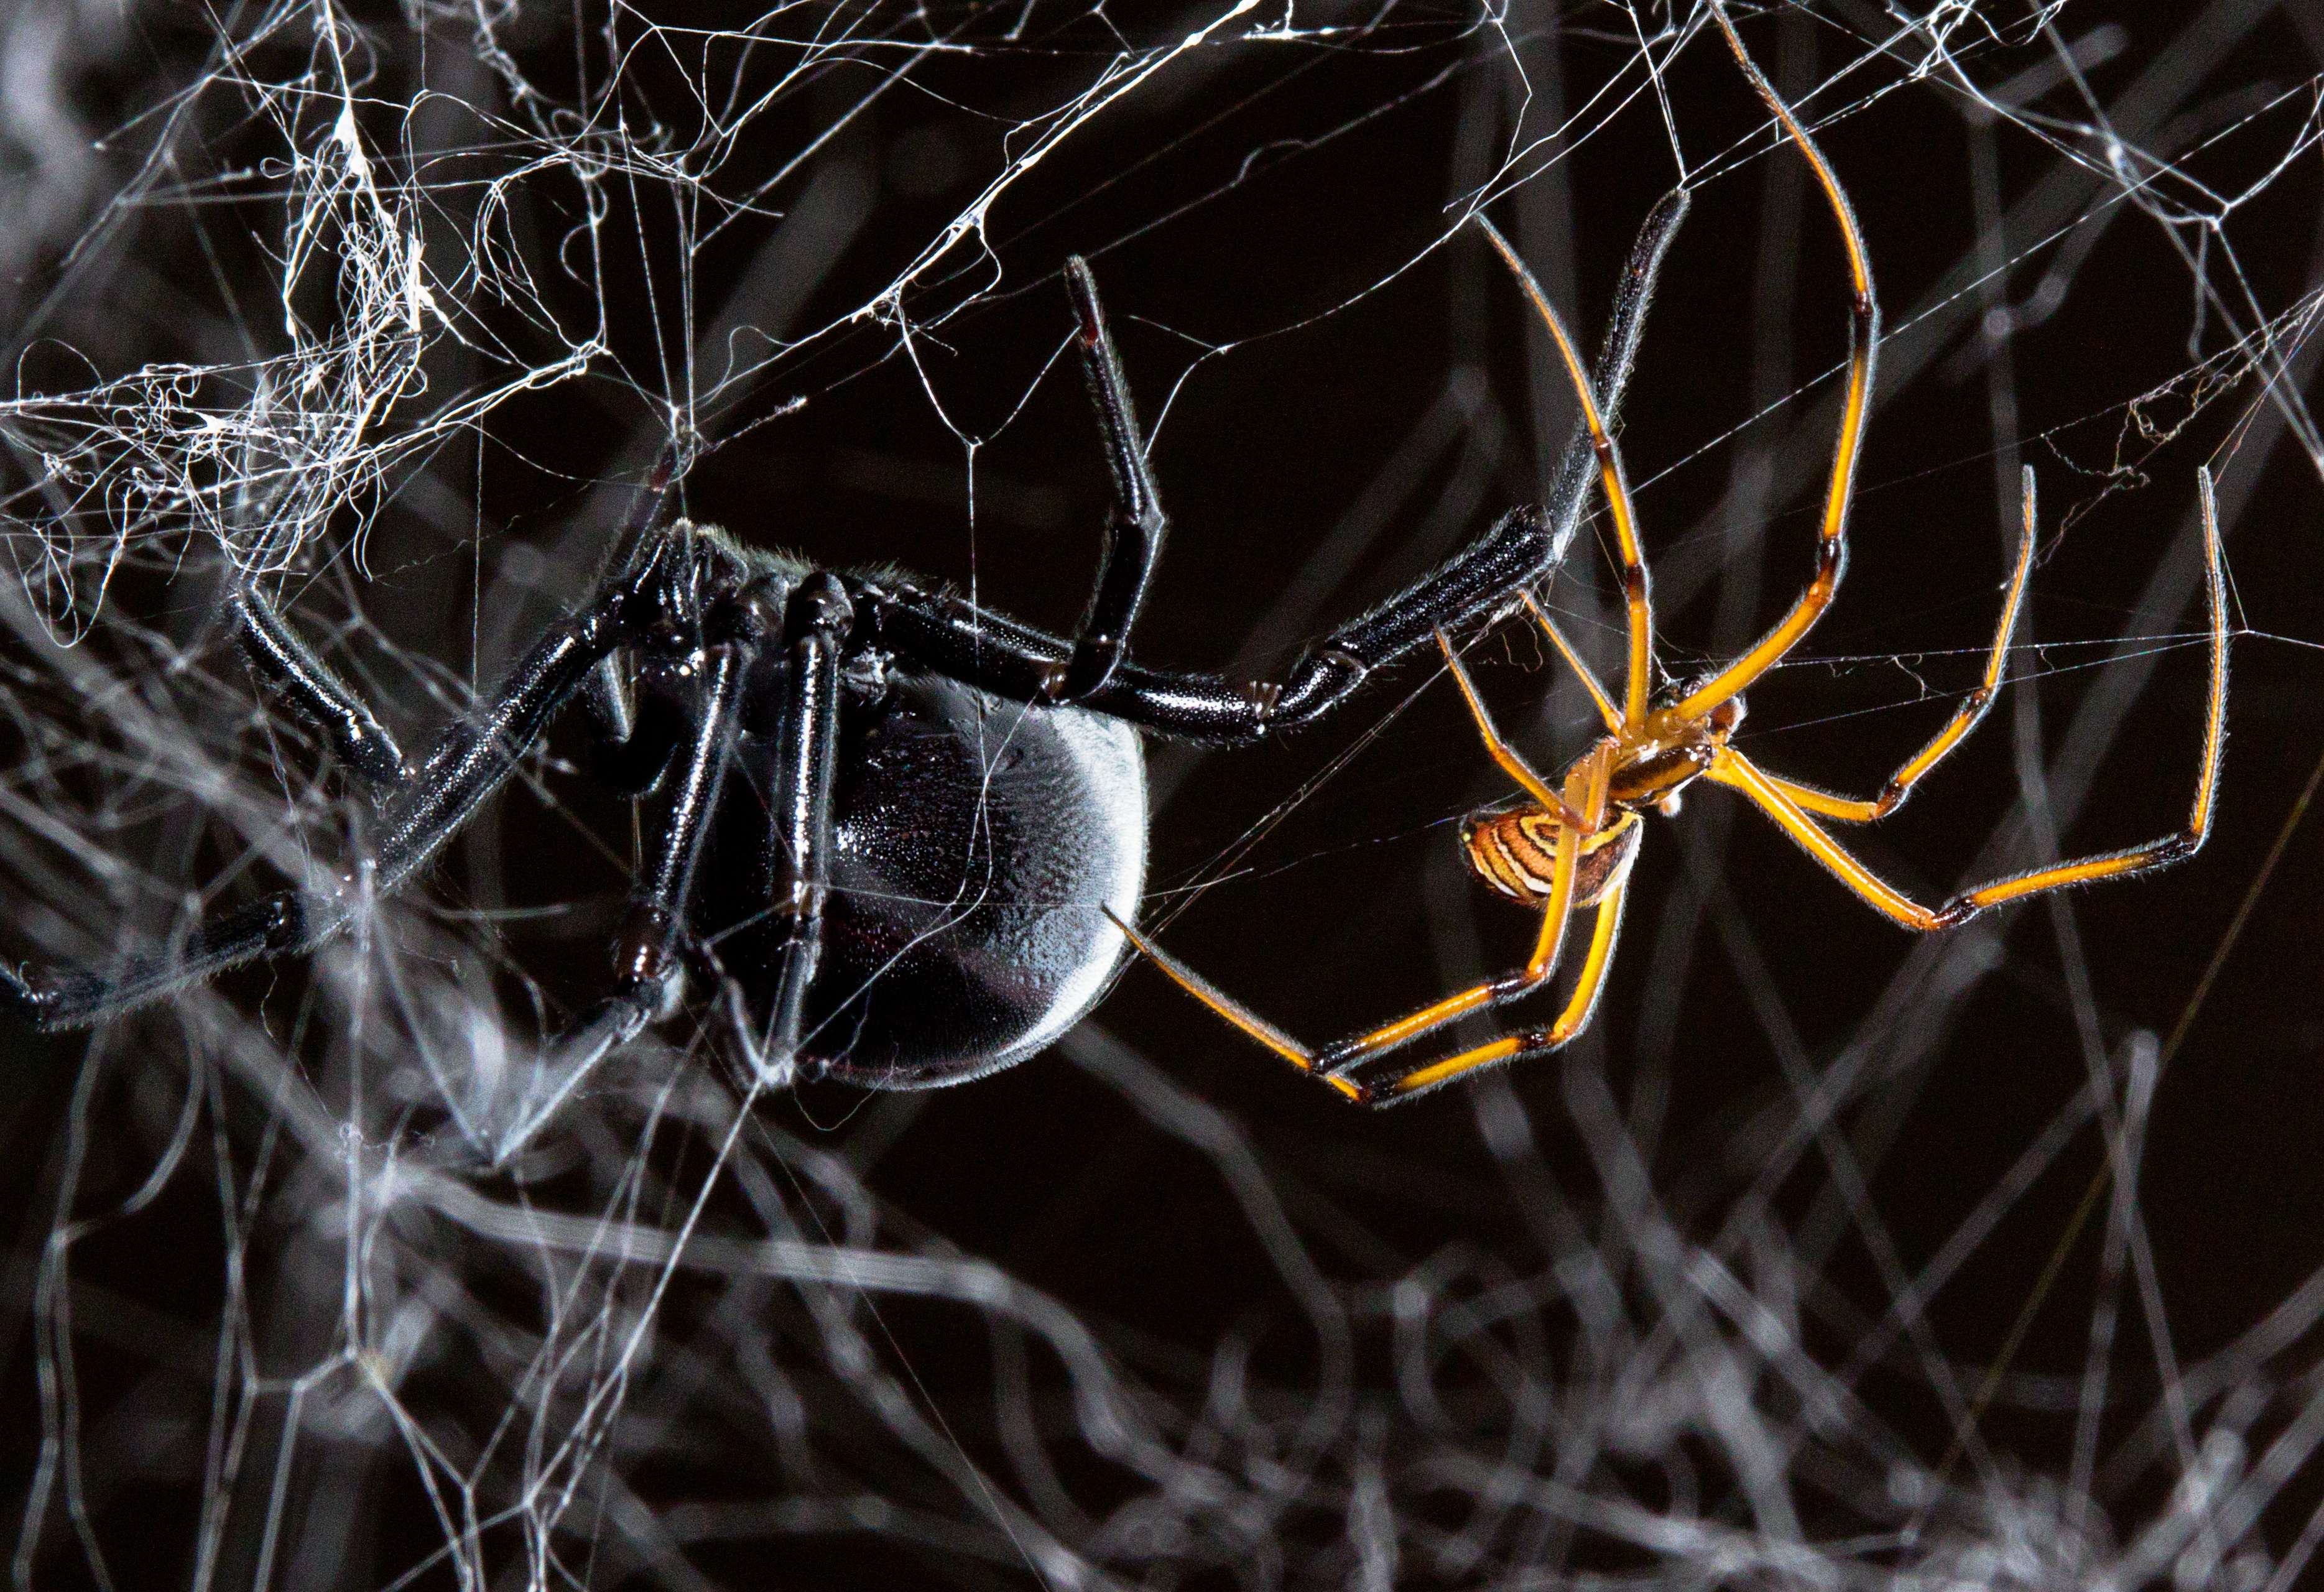 Black Widows Are Sexually Dimorphic The Familiar Female Is On Left And Much Smaller More Brightly Coloured Male Right